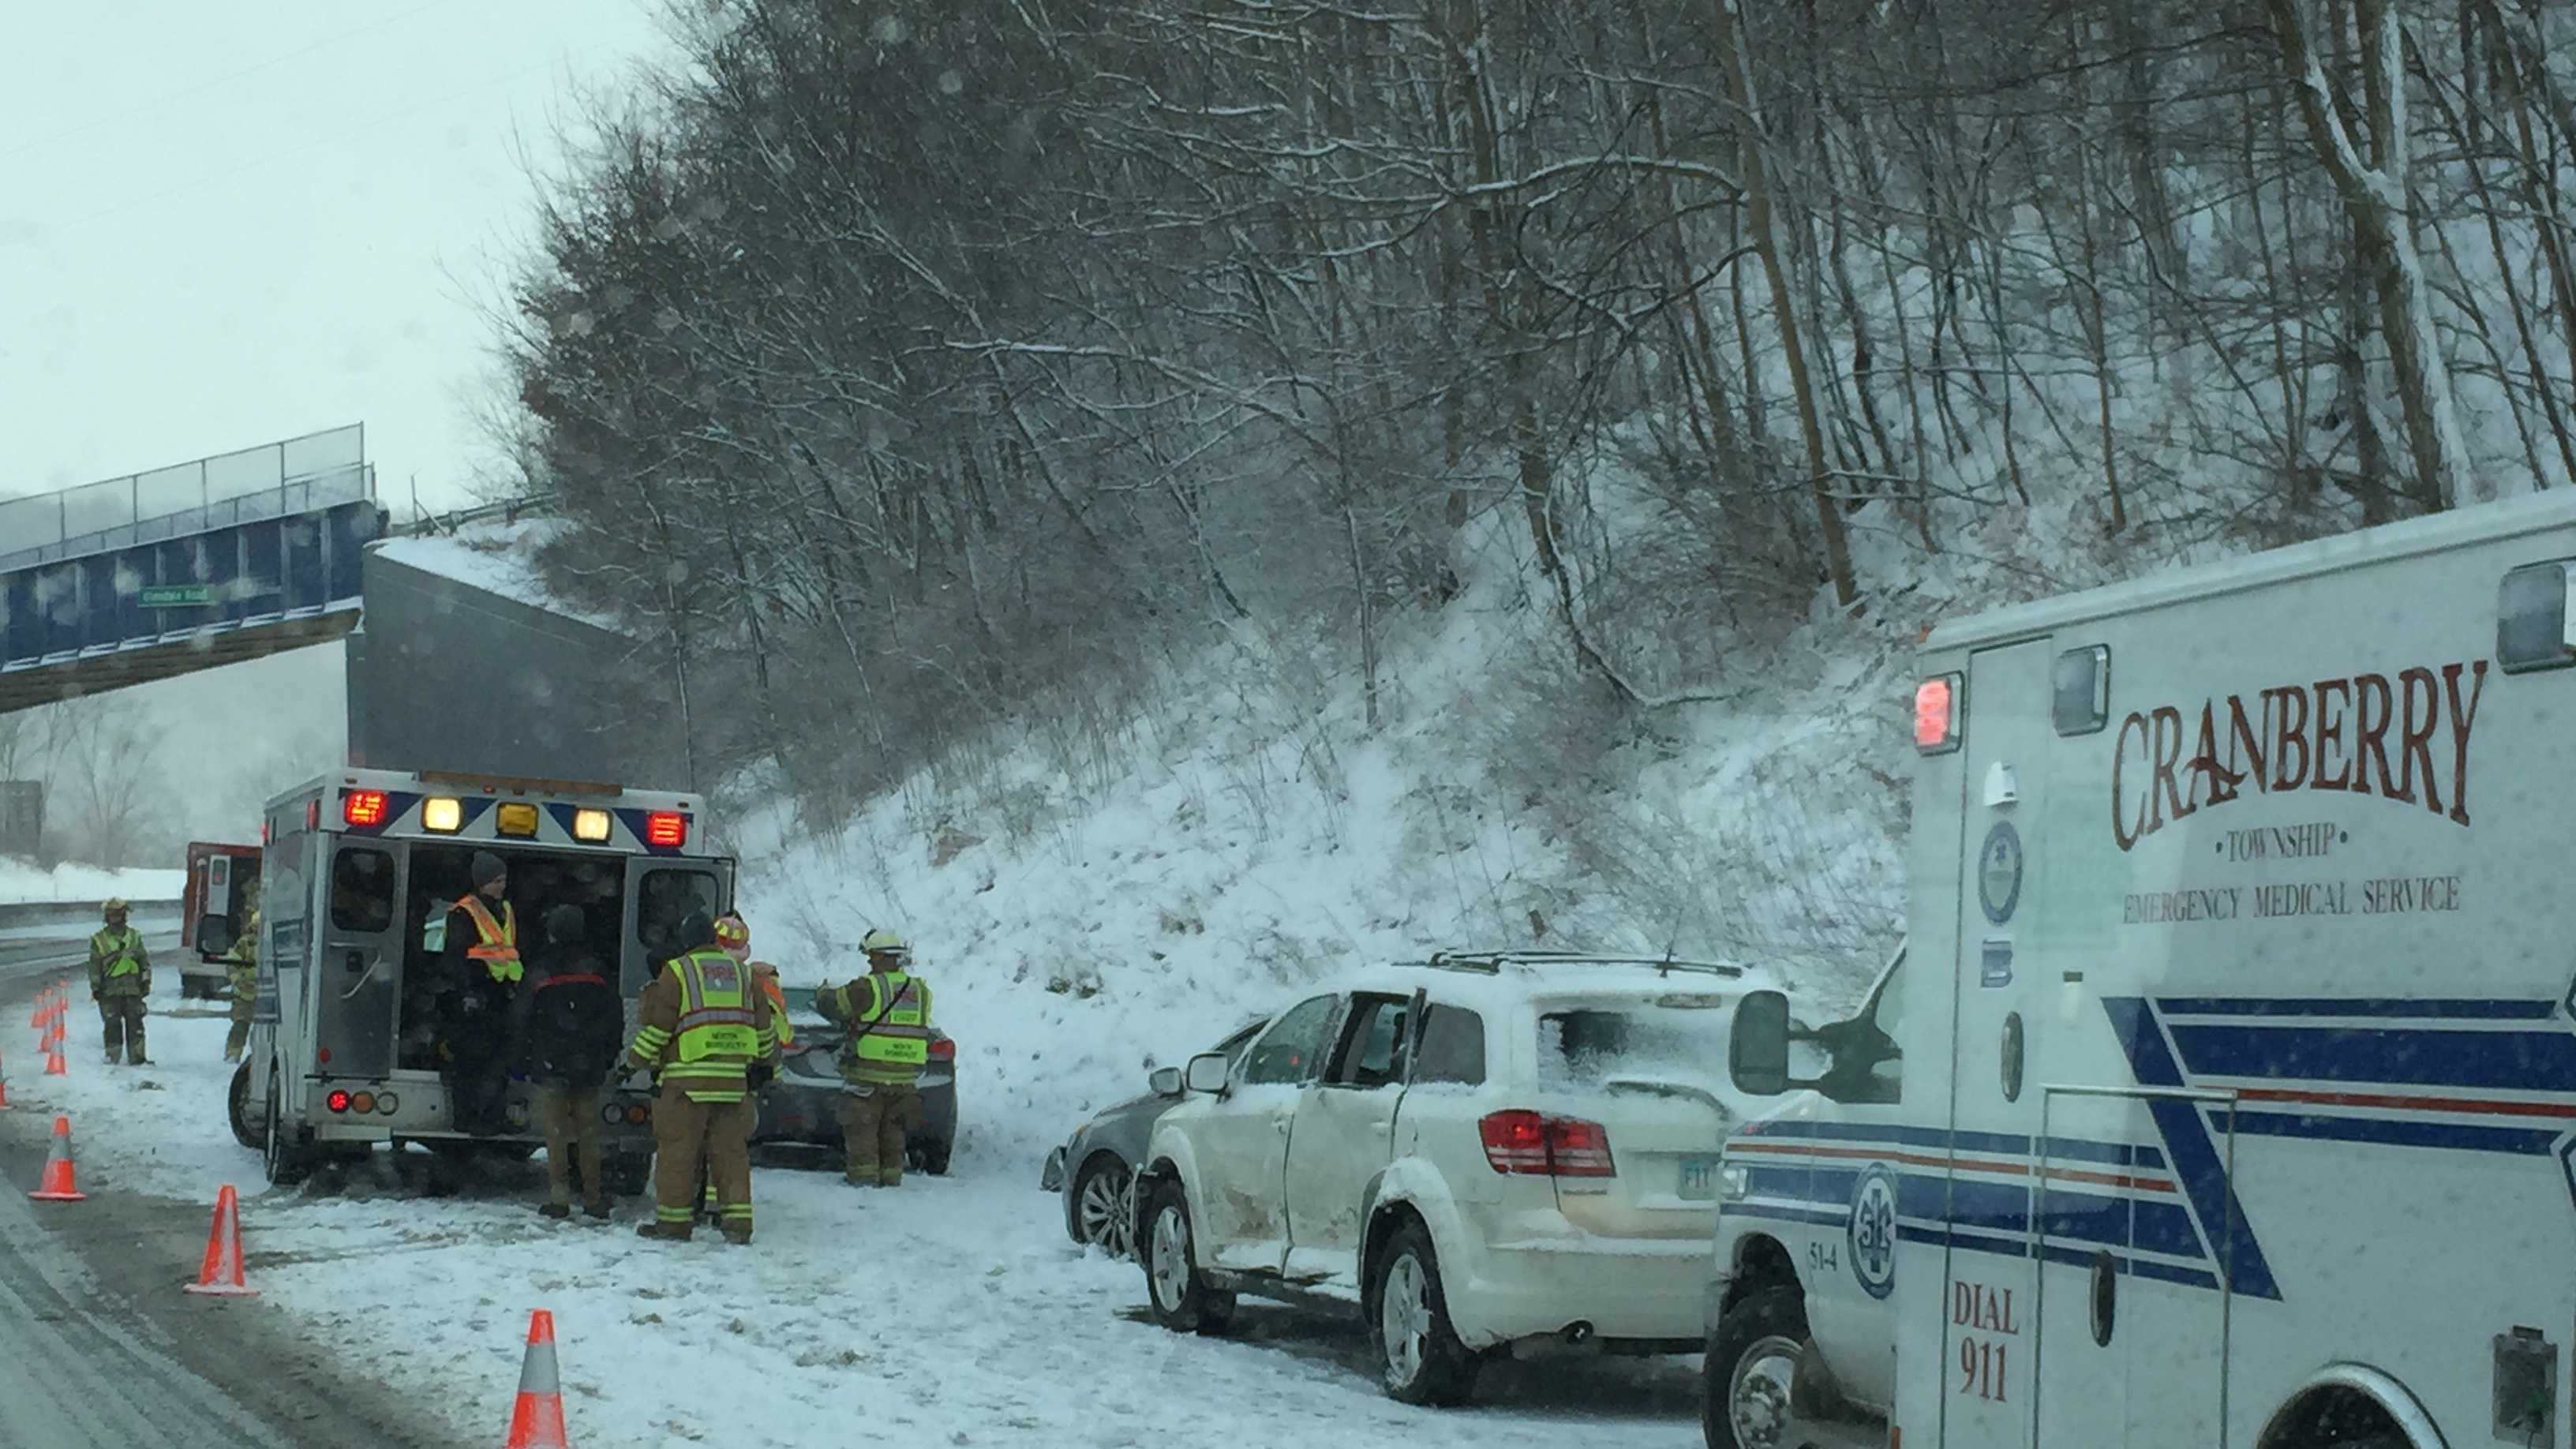 Turnpike control says there are multiple accidents in both directions between the Beaver Valley and Cranberry exits.